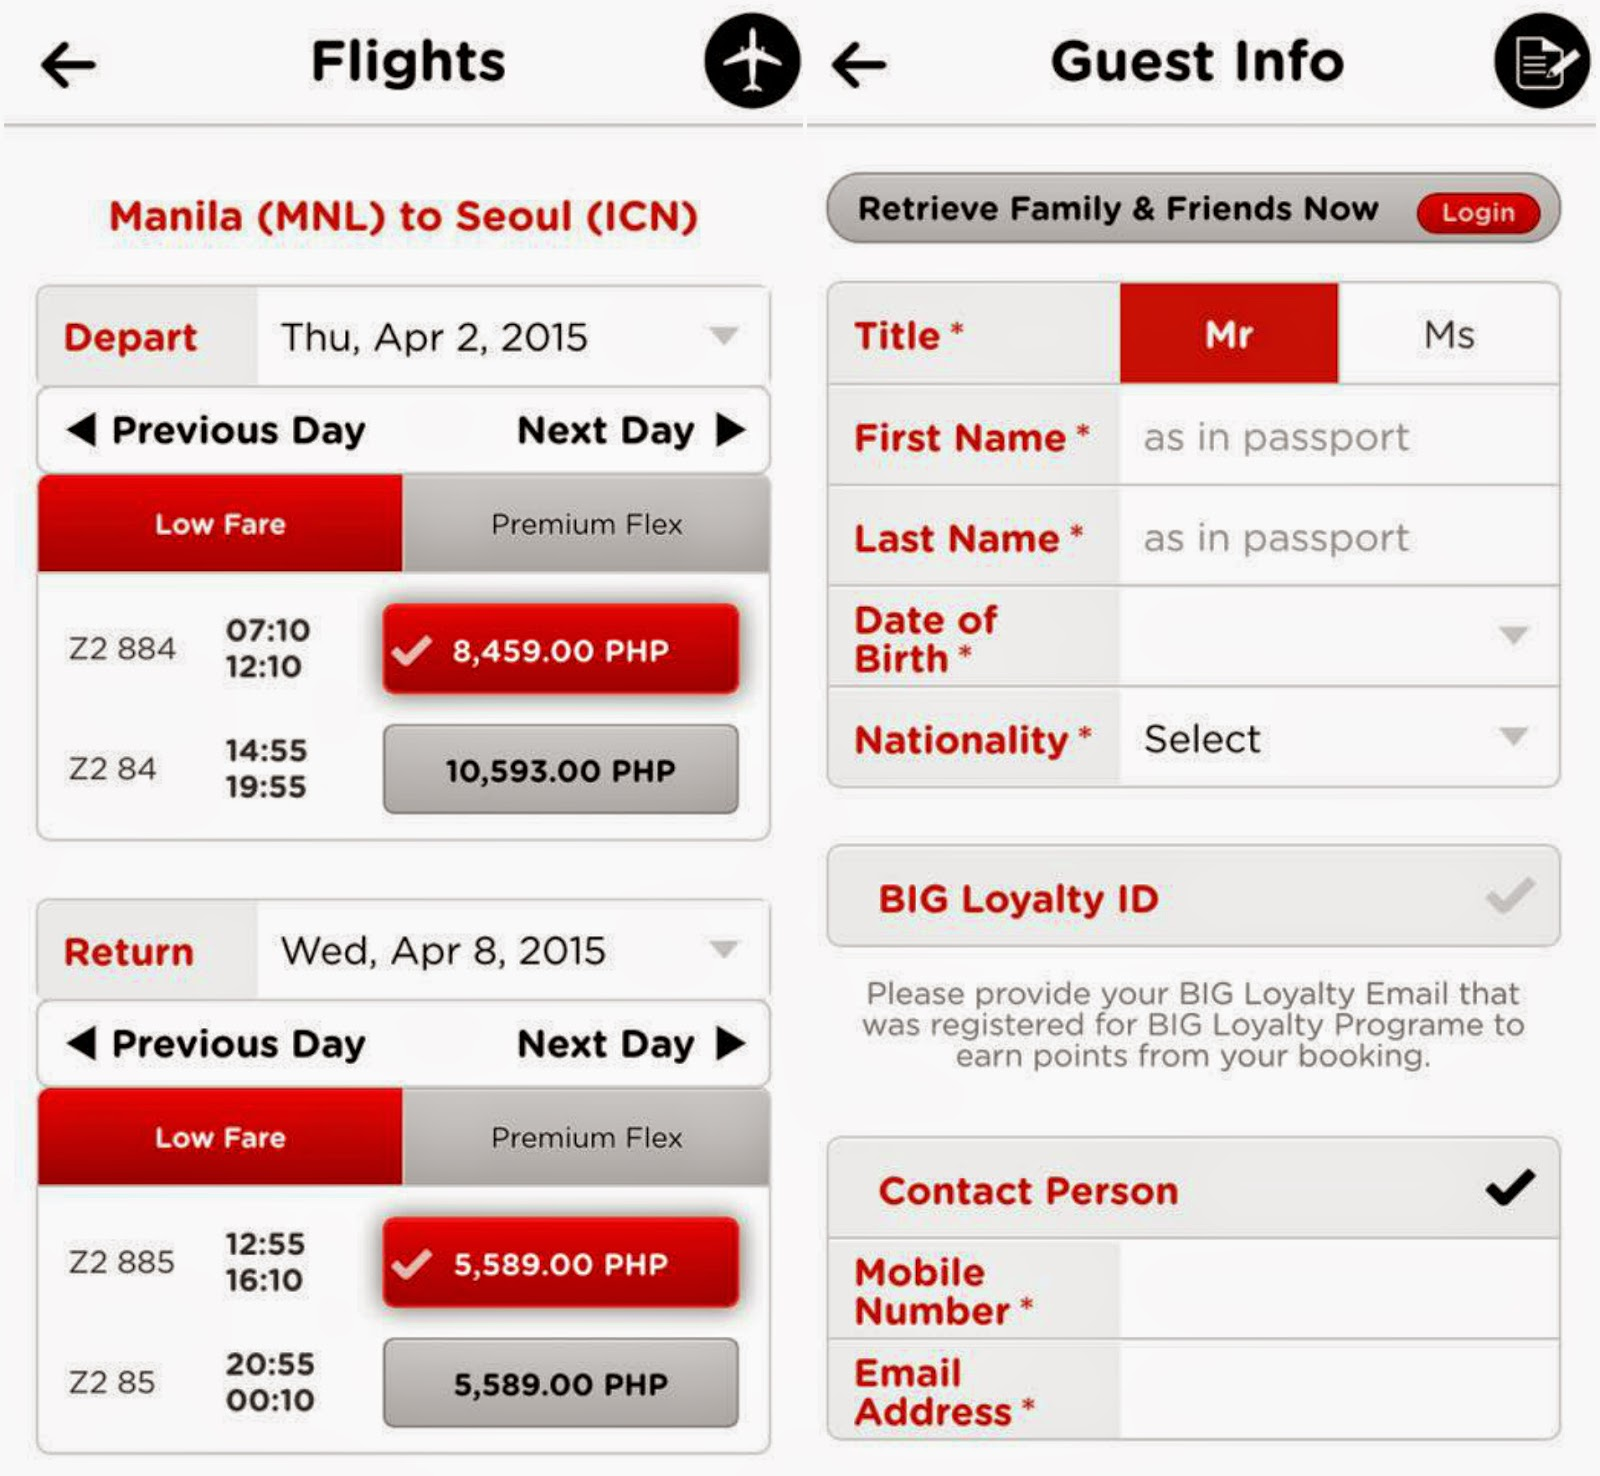 FTW! Blog, Flight Schedule, Guest Info